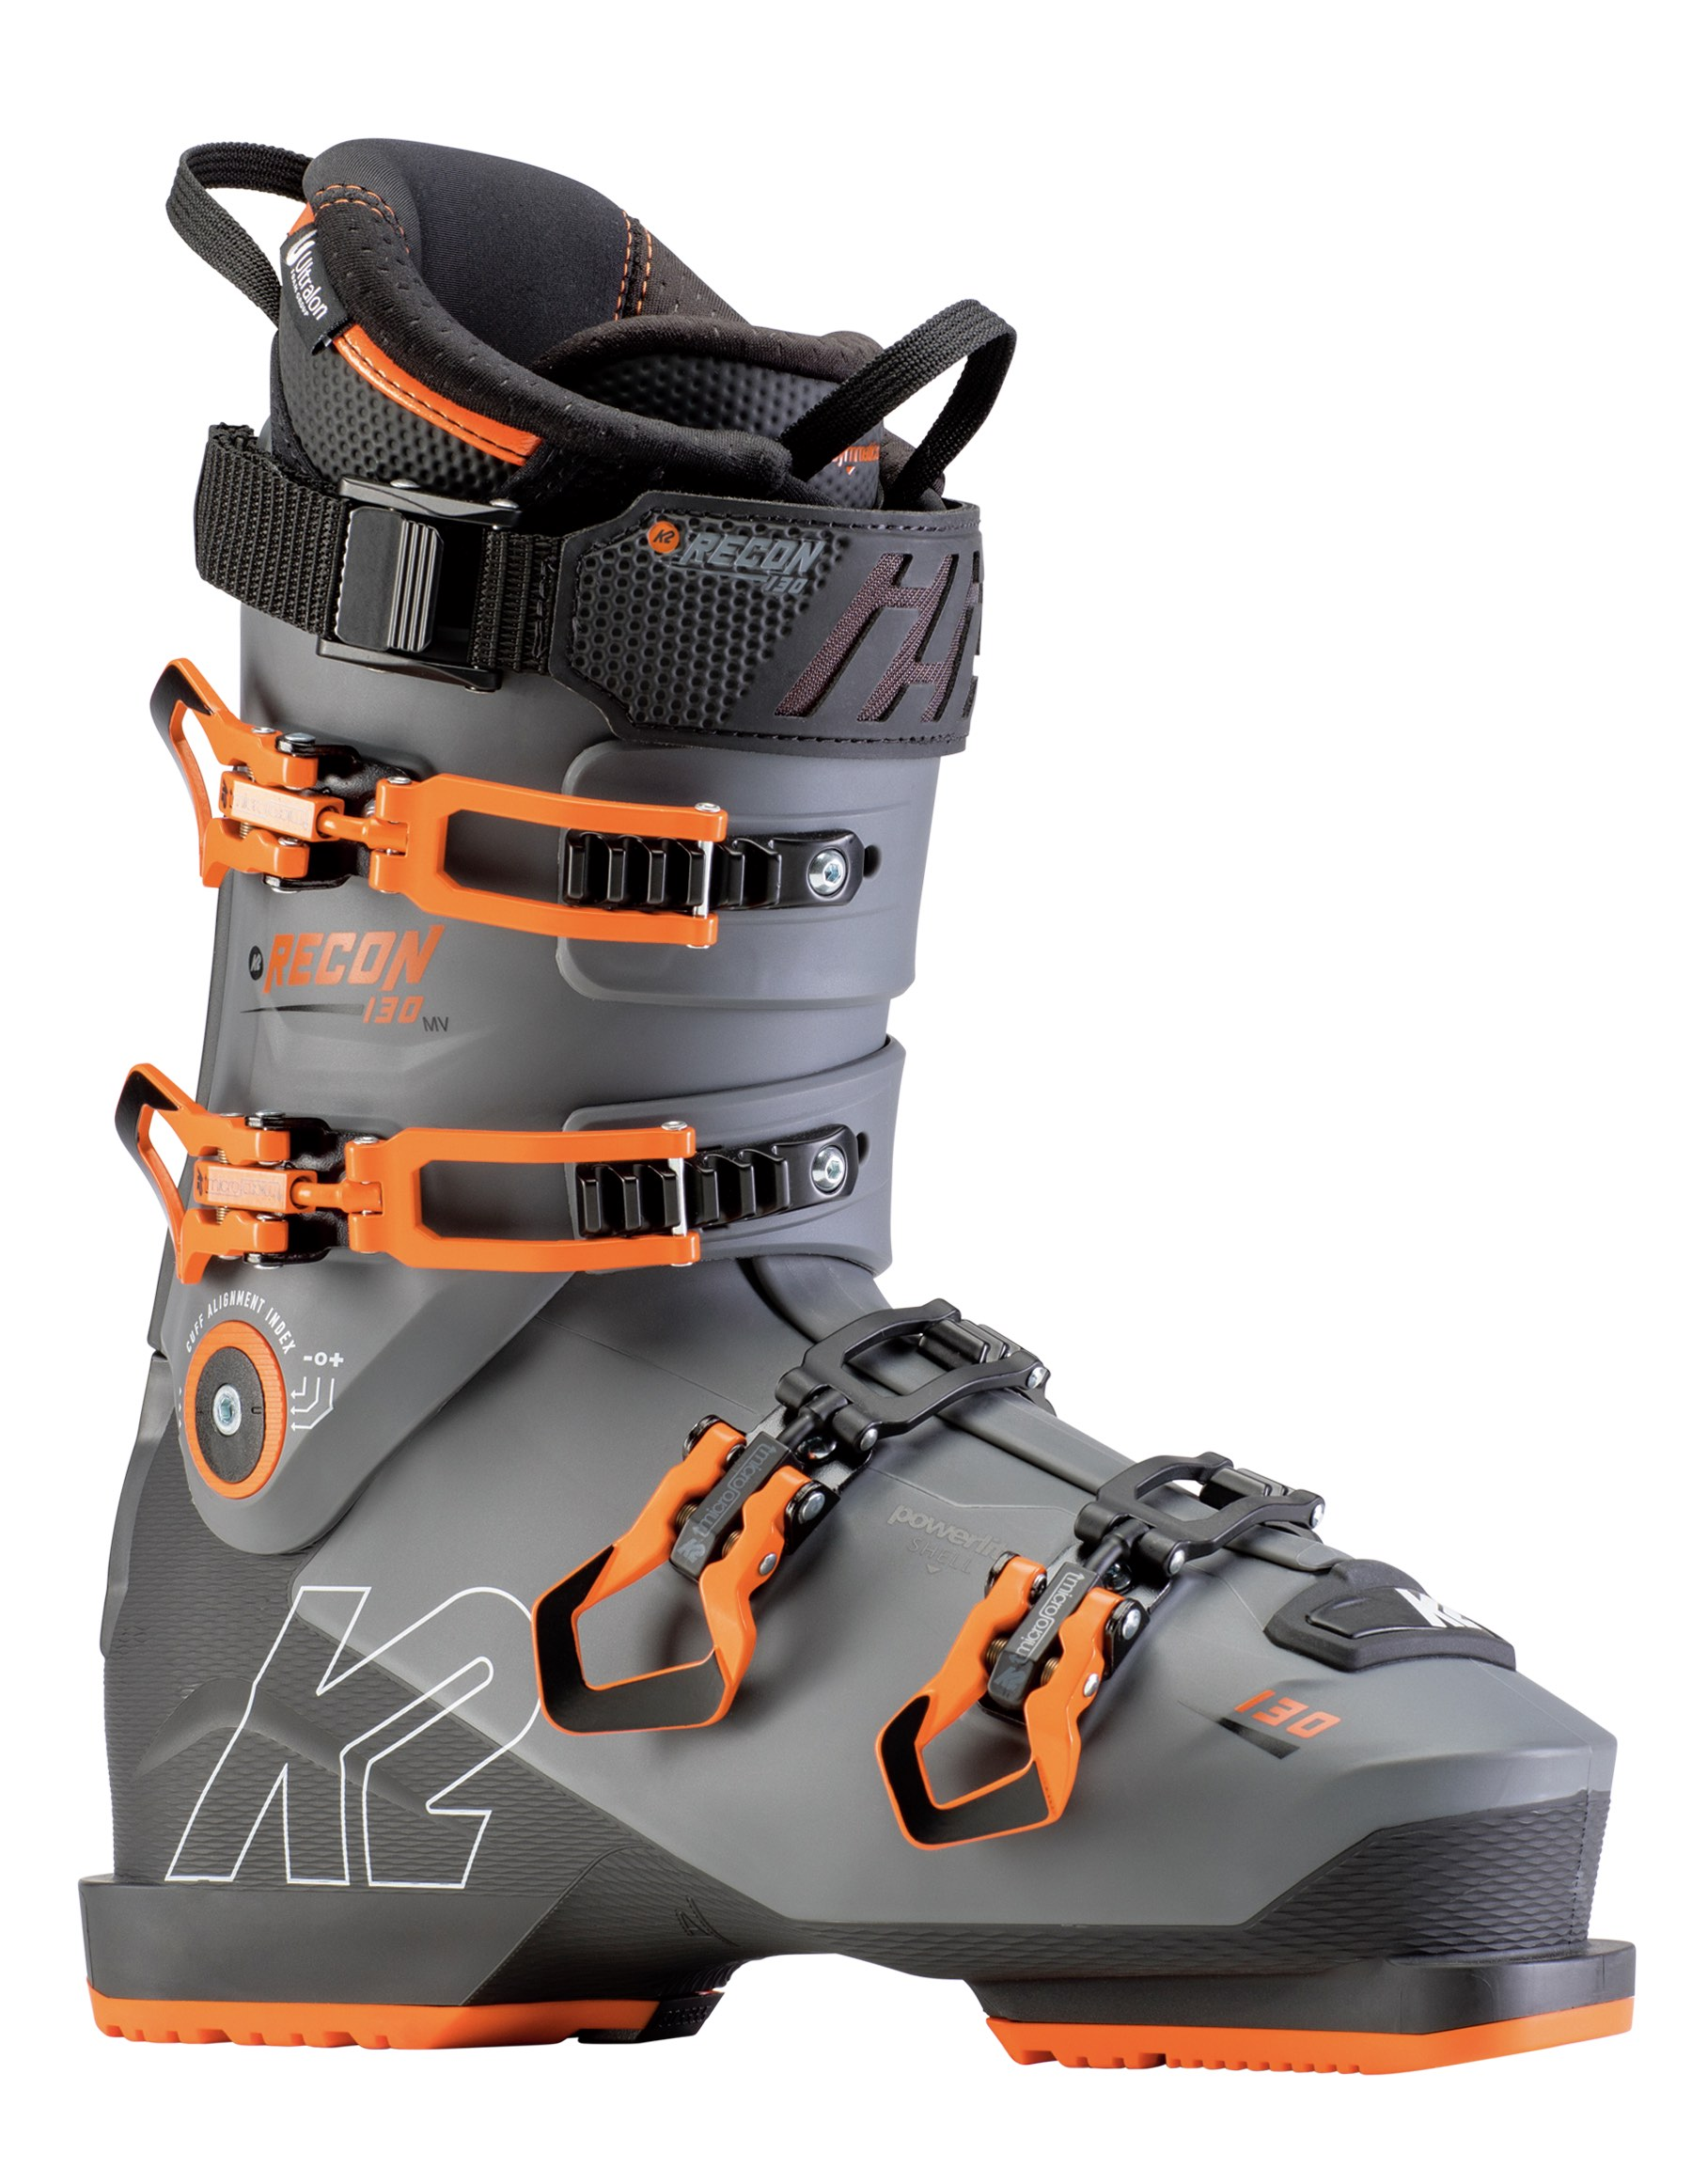 d3db7e62cc1 Boot Reviews Archive - Realskiers